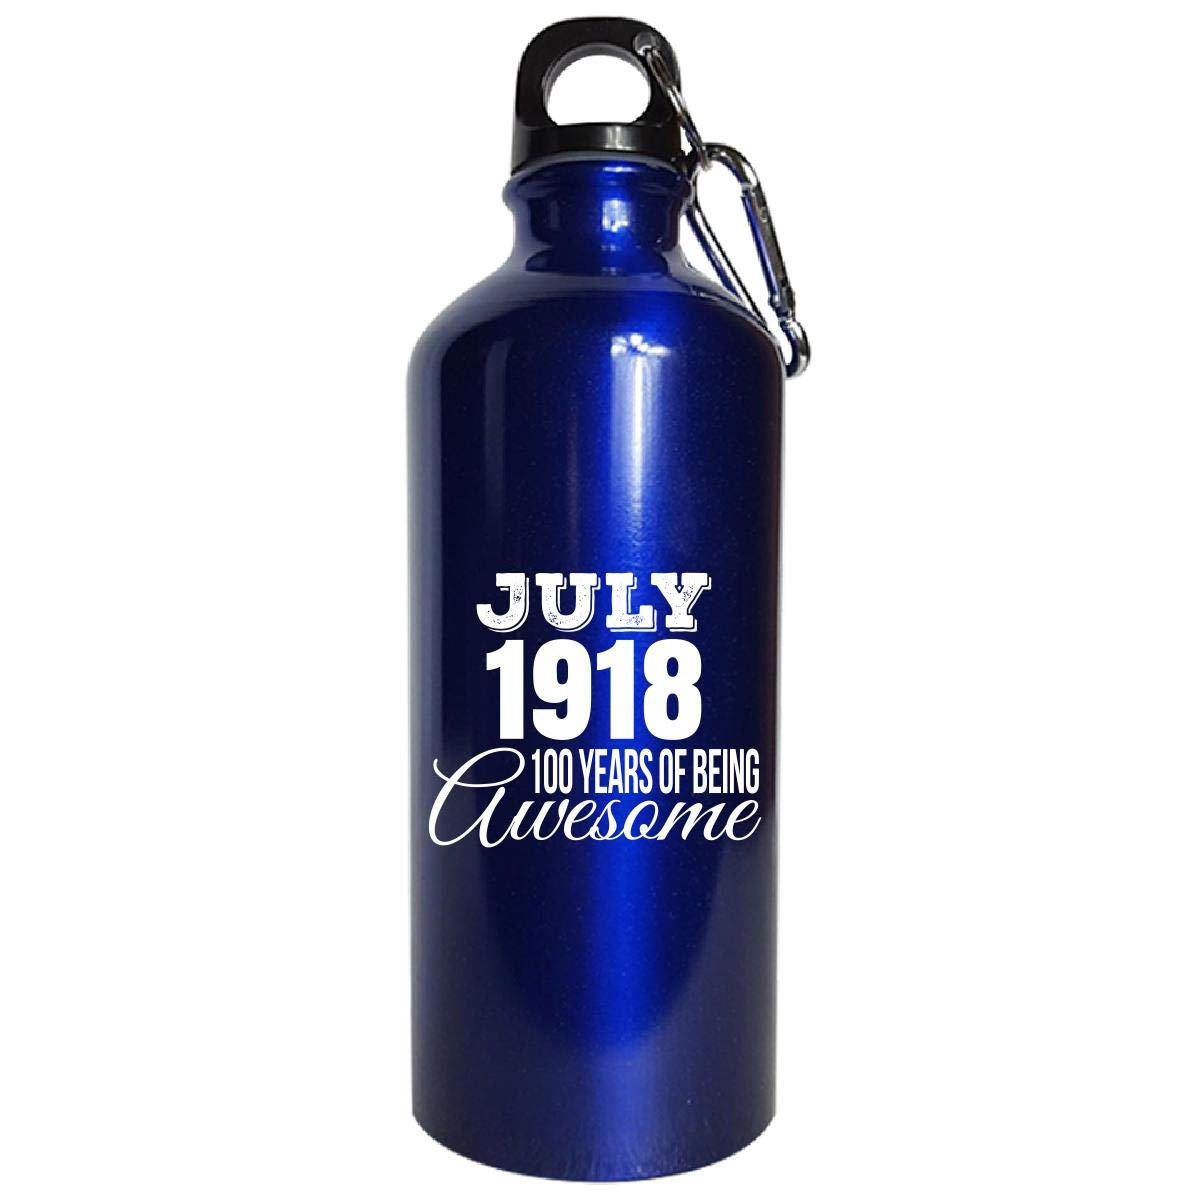 July 1918 100 Years Of Being Awesome Funny Birthday Gift - Water Bottle Metallic Blue by Shirt Luv (Image #1)